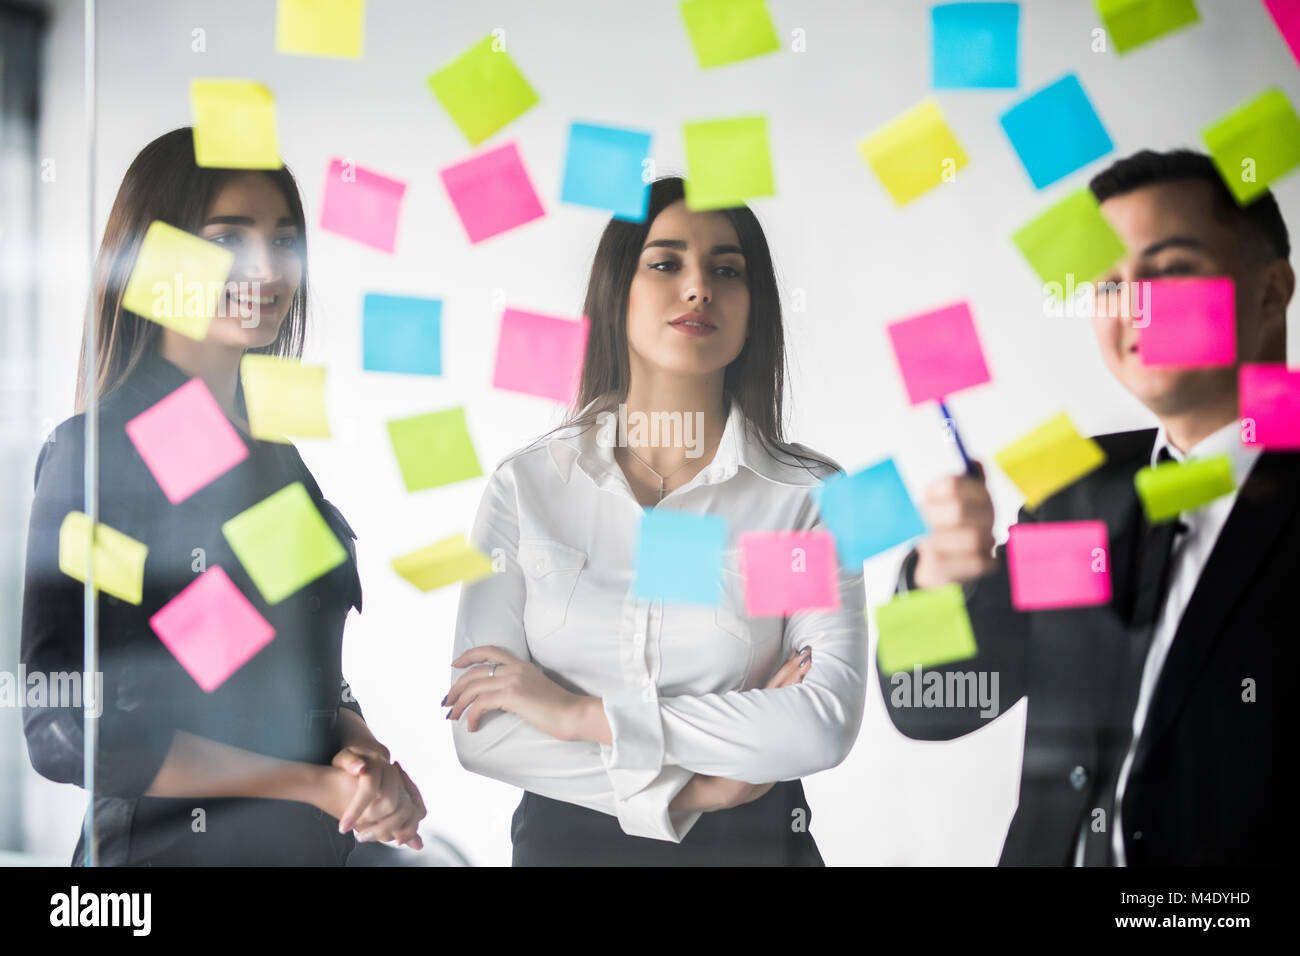 Beautiful business people are using stickers and marker, discussing ideas and smiling during the conference in office - Stock Image